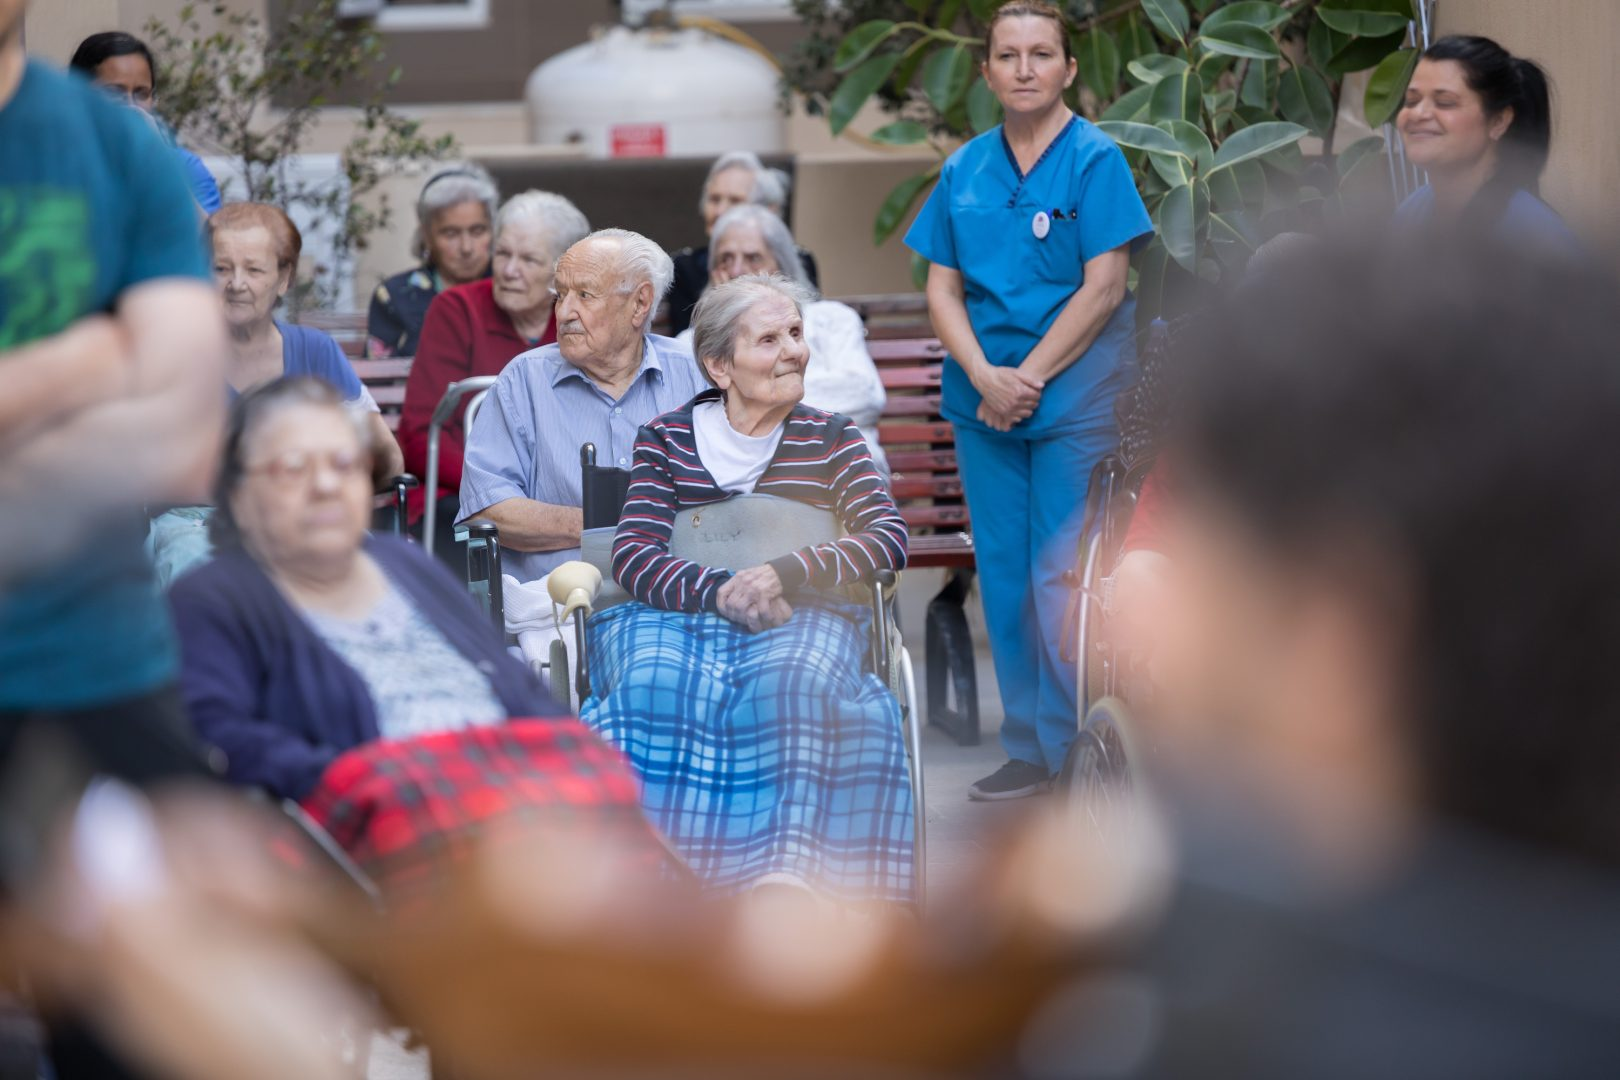 Bringing music to the elderly, an event by the Malta Philharmonic Orchestra